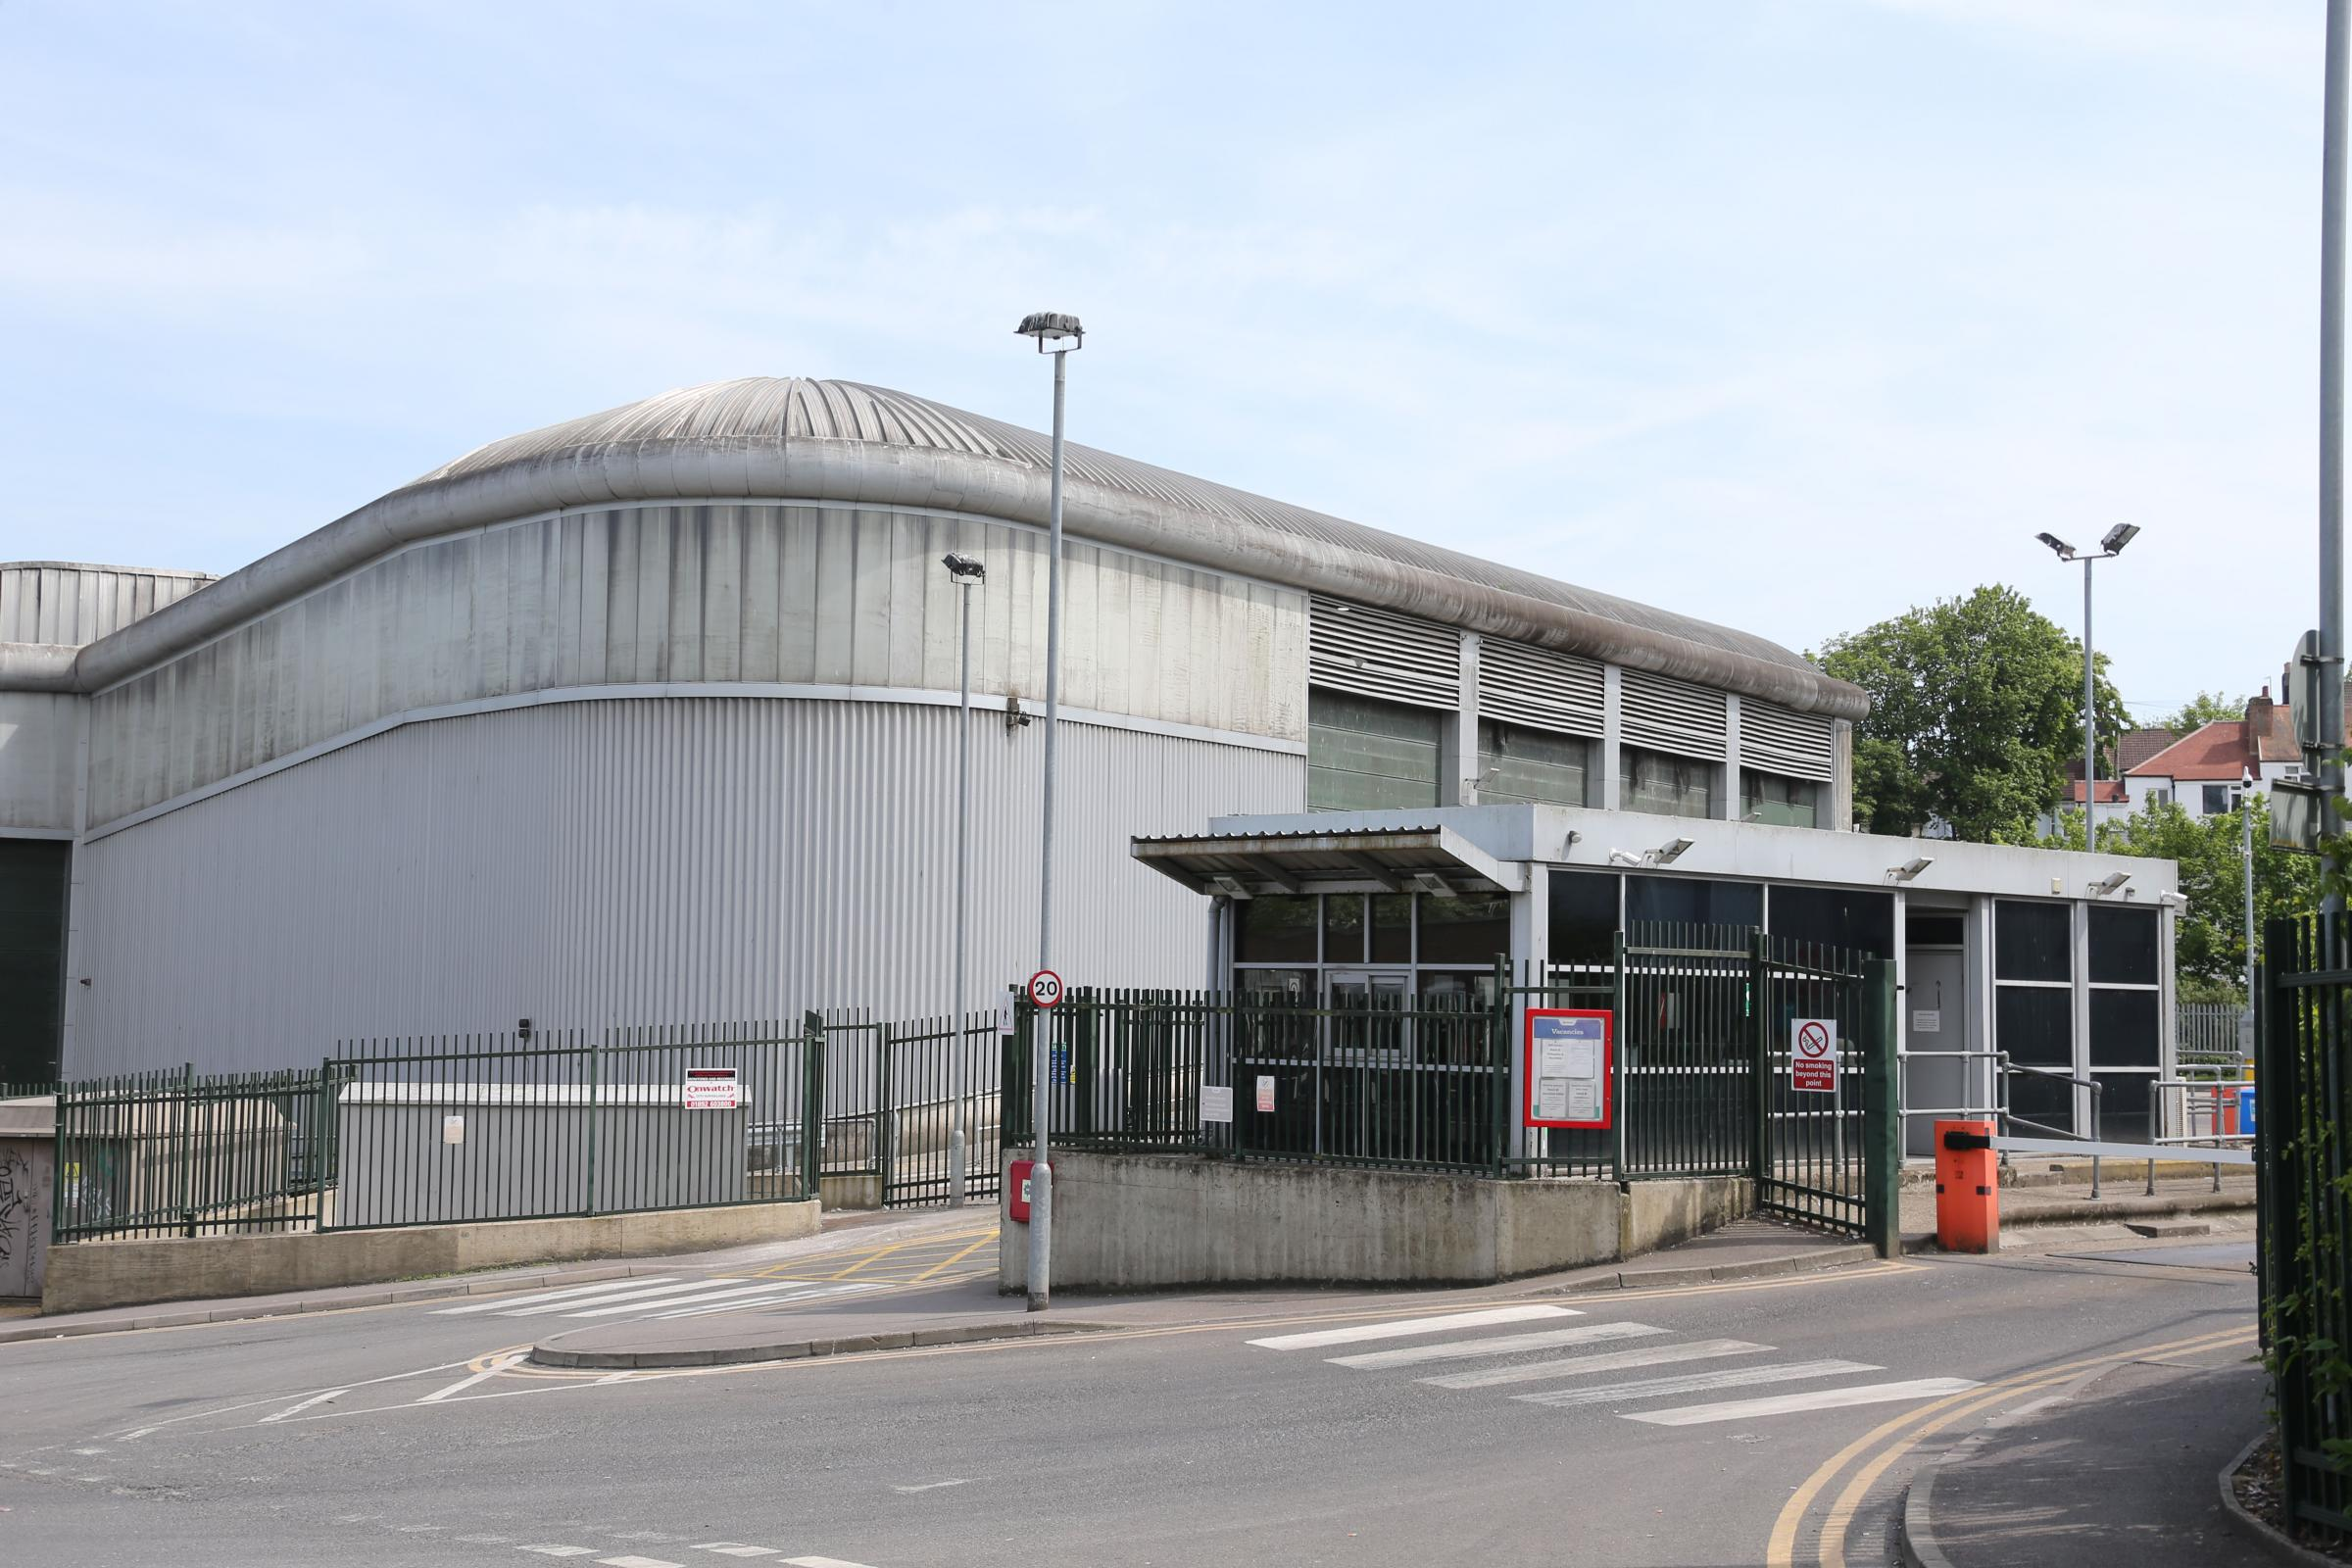 The recycling plant in Hollingdean